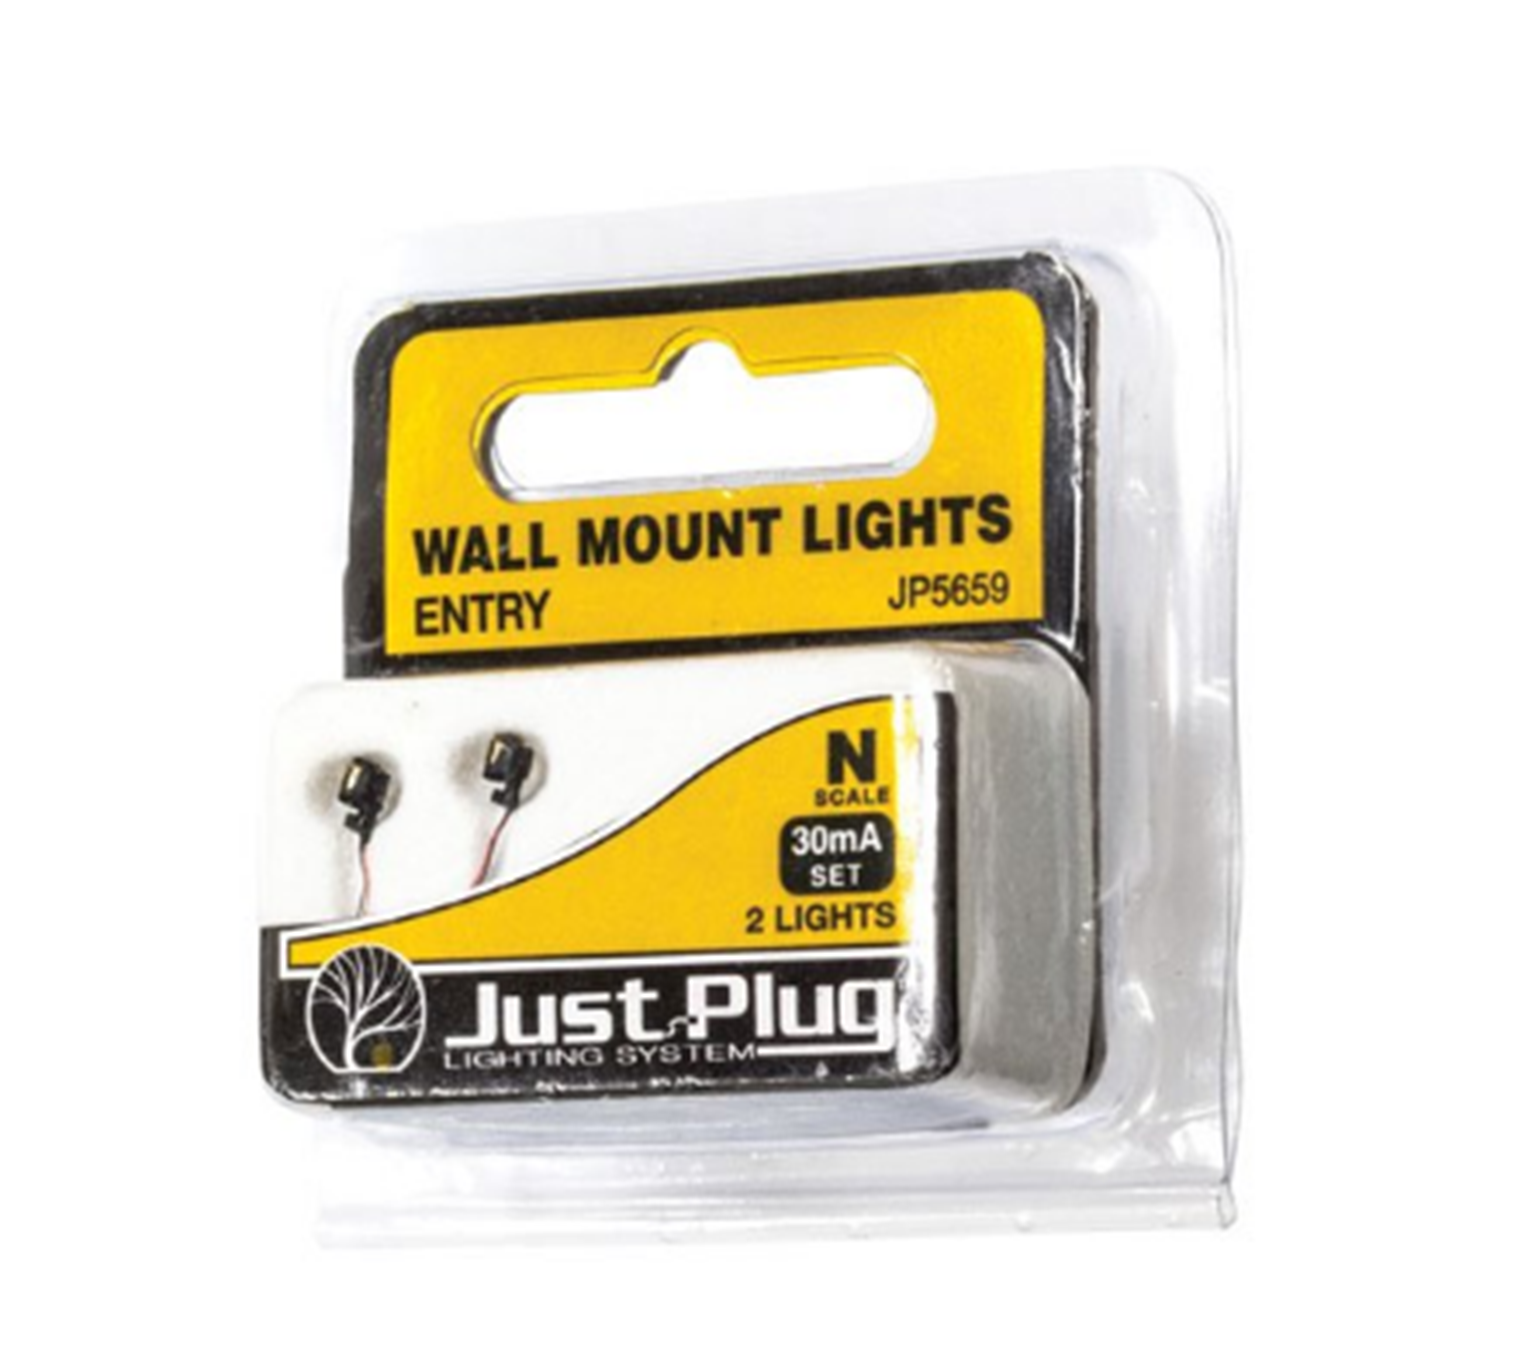 Entry Wall Mount Lights - N Scale